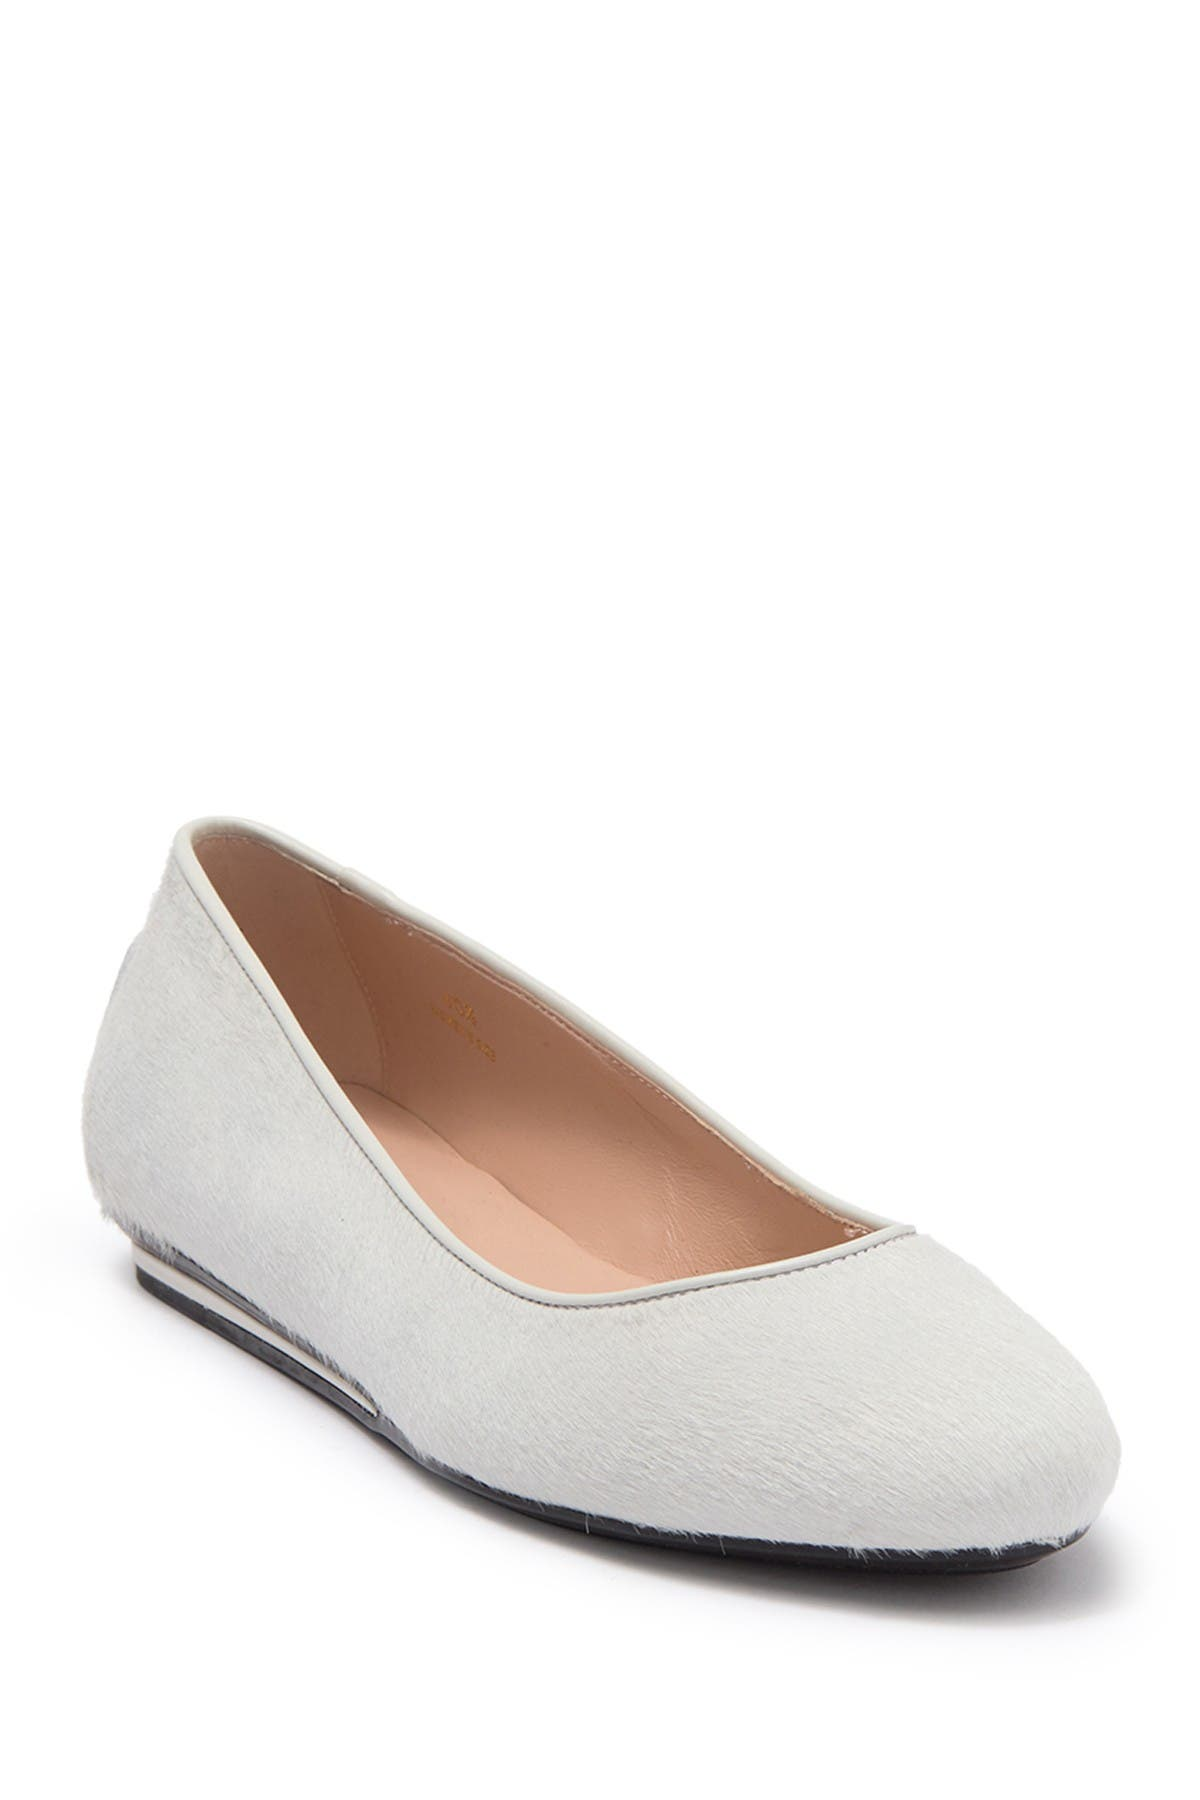 Image of Tod's Tods Ballerina Flat